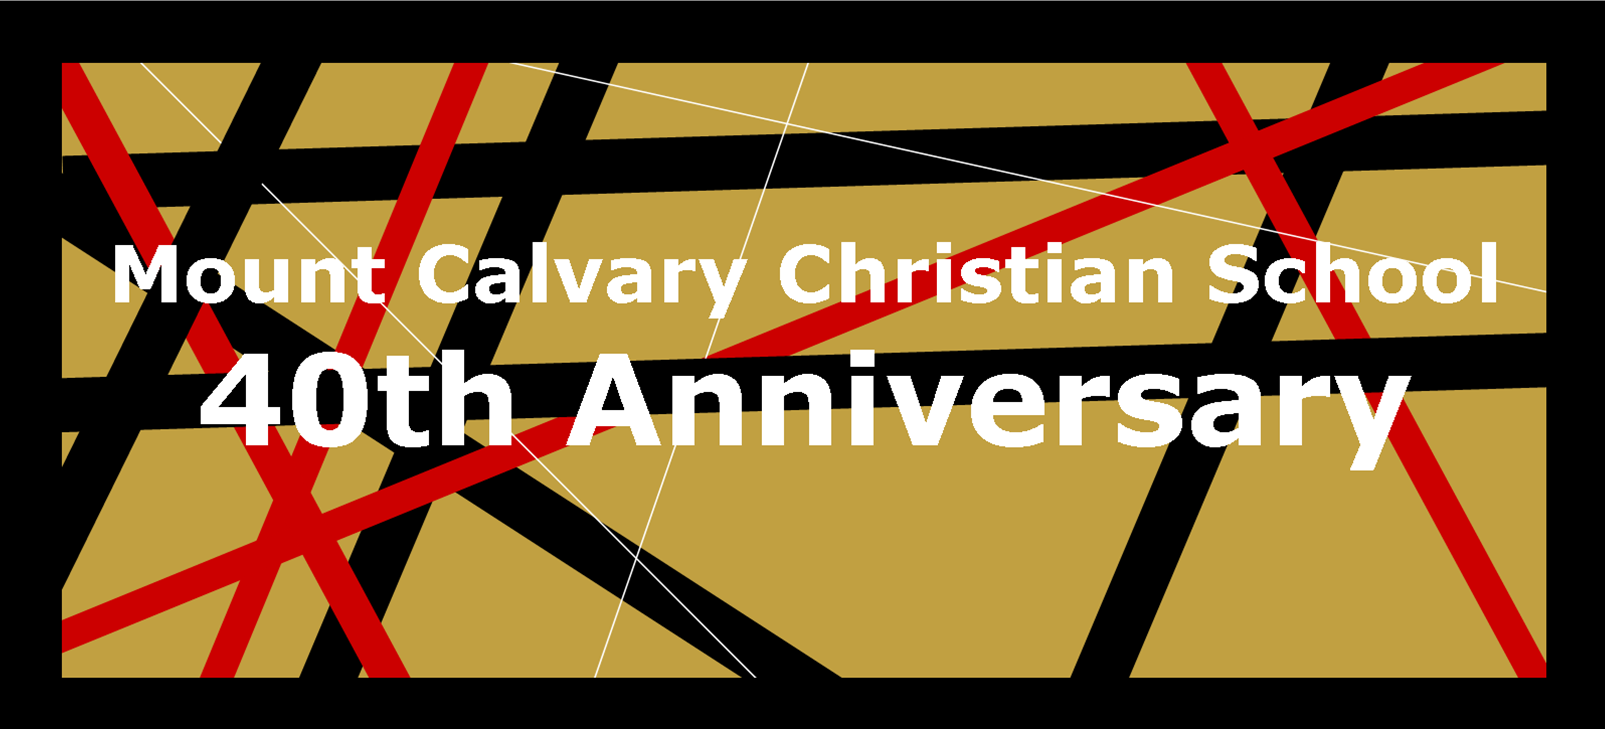 christian singles in mount calvary Shop kingdom living  the sermon on the mount series $ 8000 – $ 25500 the cross of christ series  calvary christian church service information calendar of .